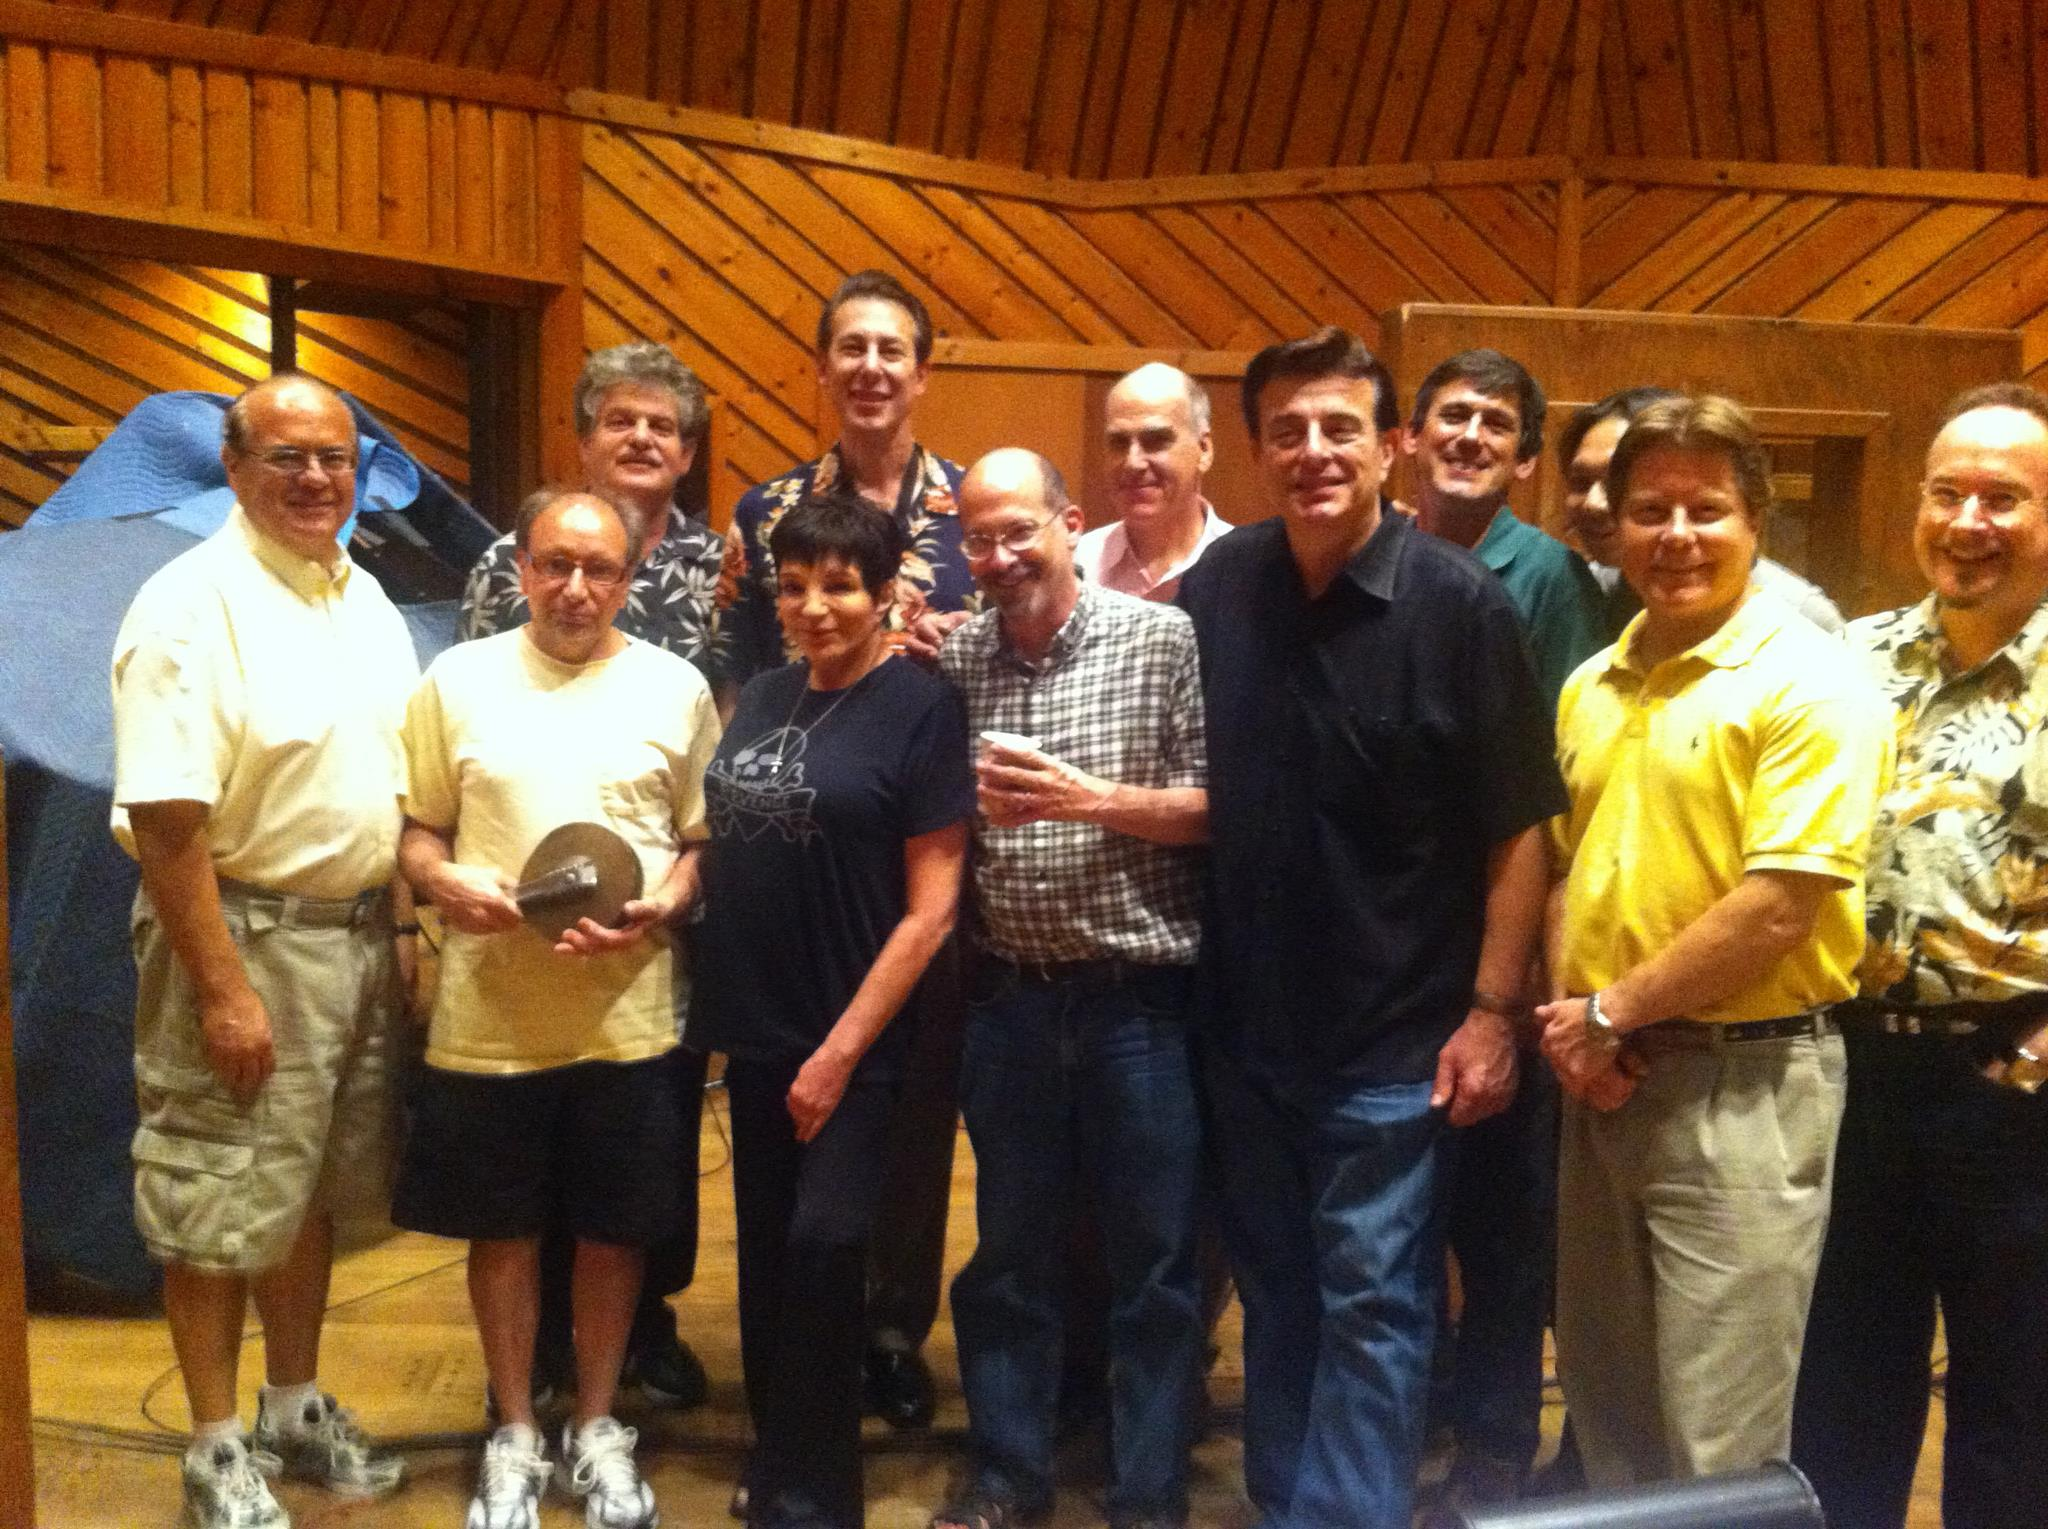 Vitaphone Project Co-Founder, bandleader Vince Giordano, with the Nighthawks and Liza Minelli recoding for the upcoming season of BOARDWALK EMPIRE